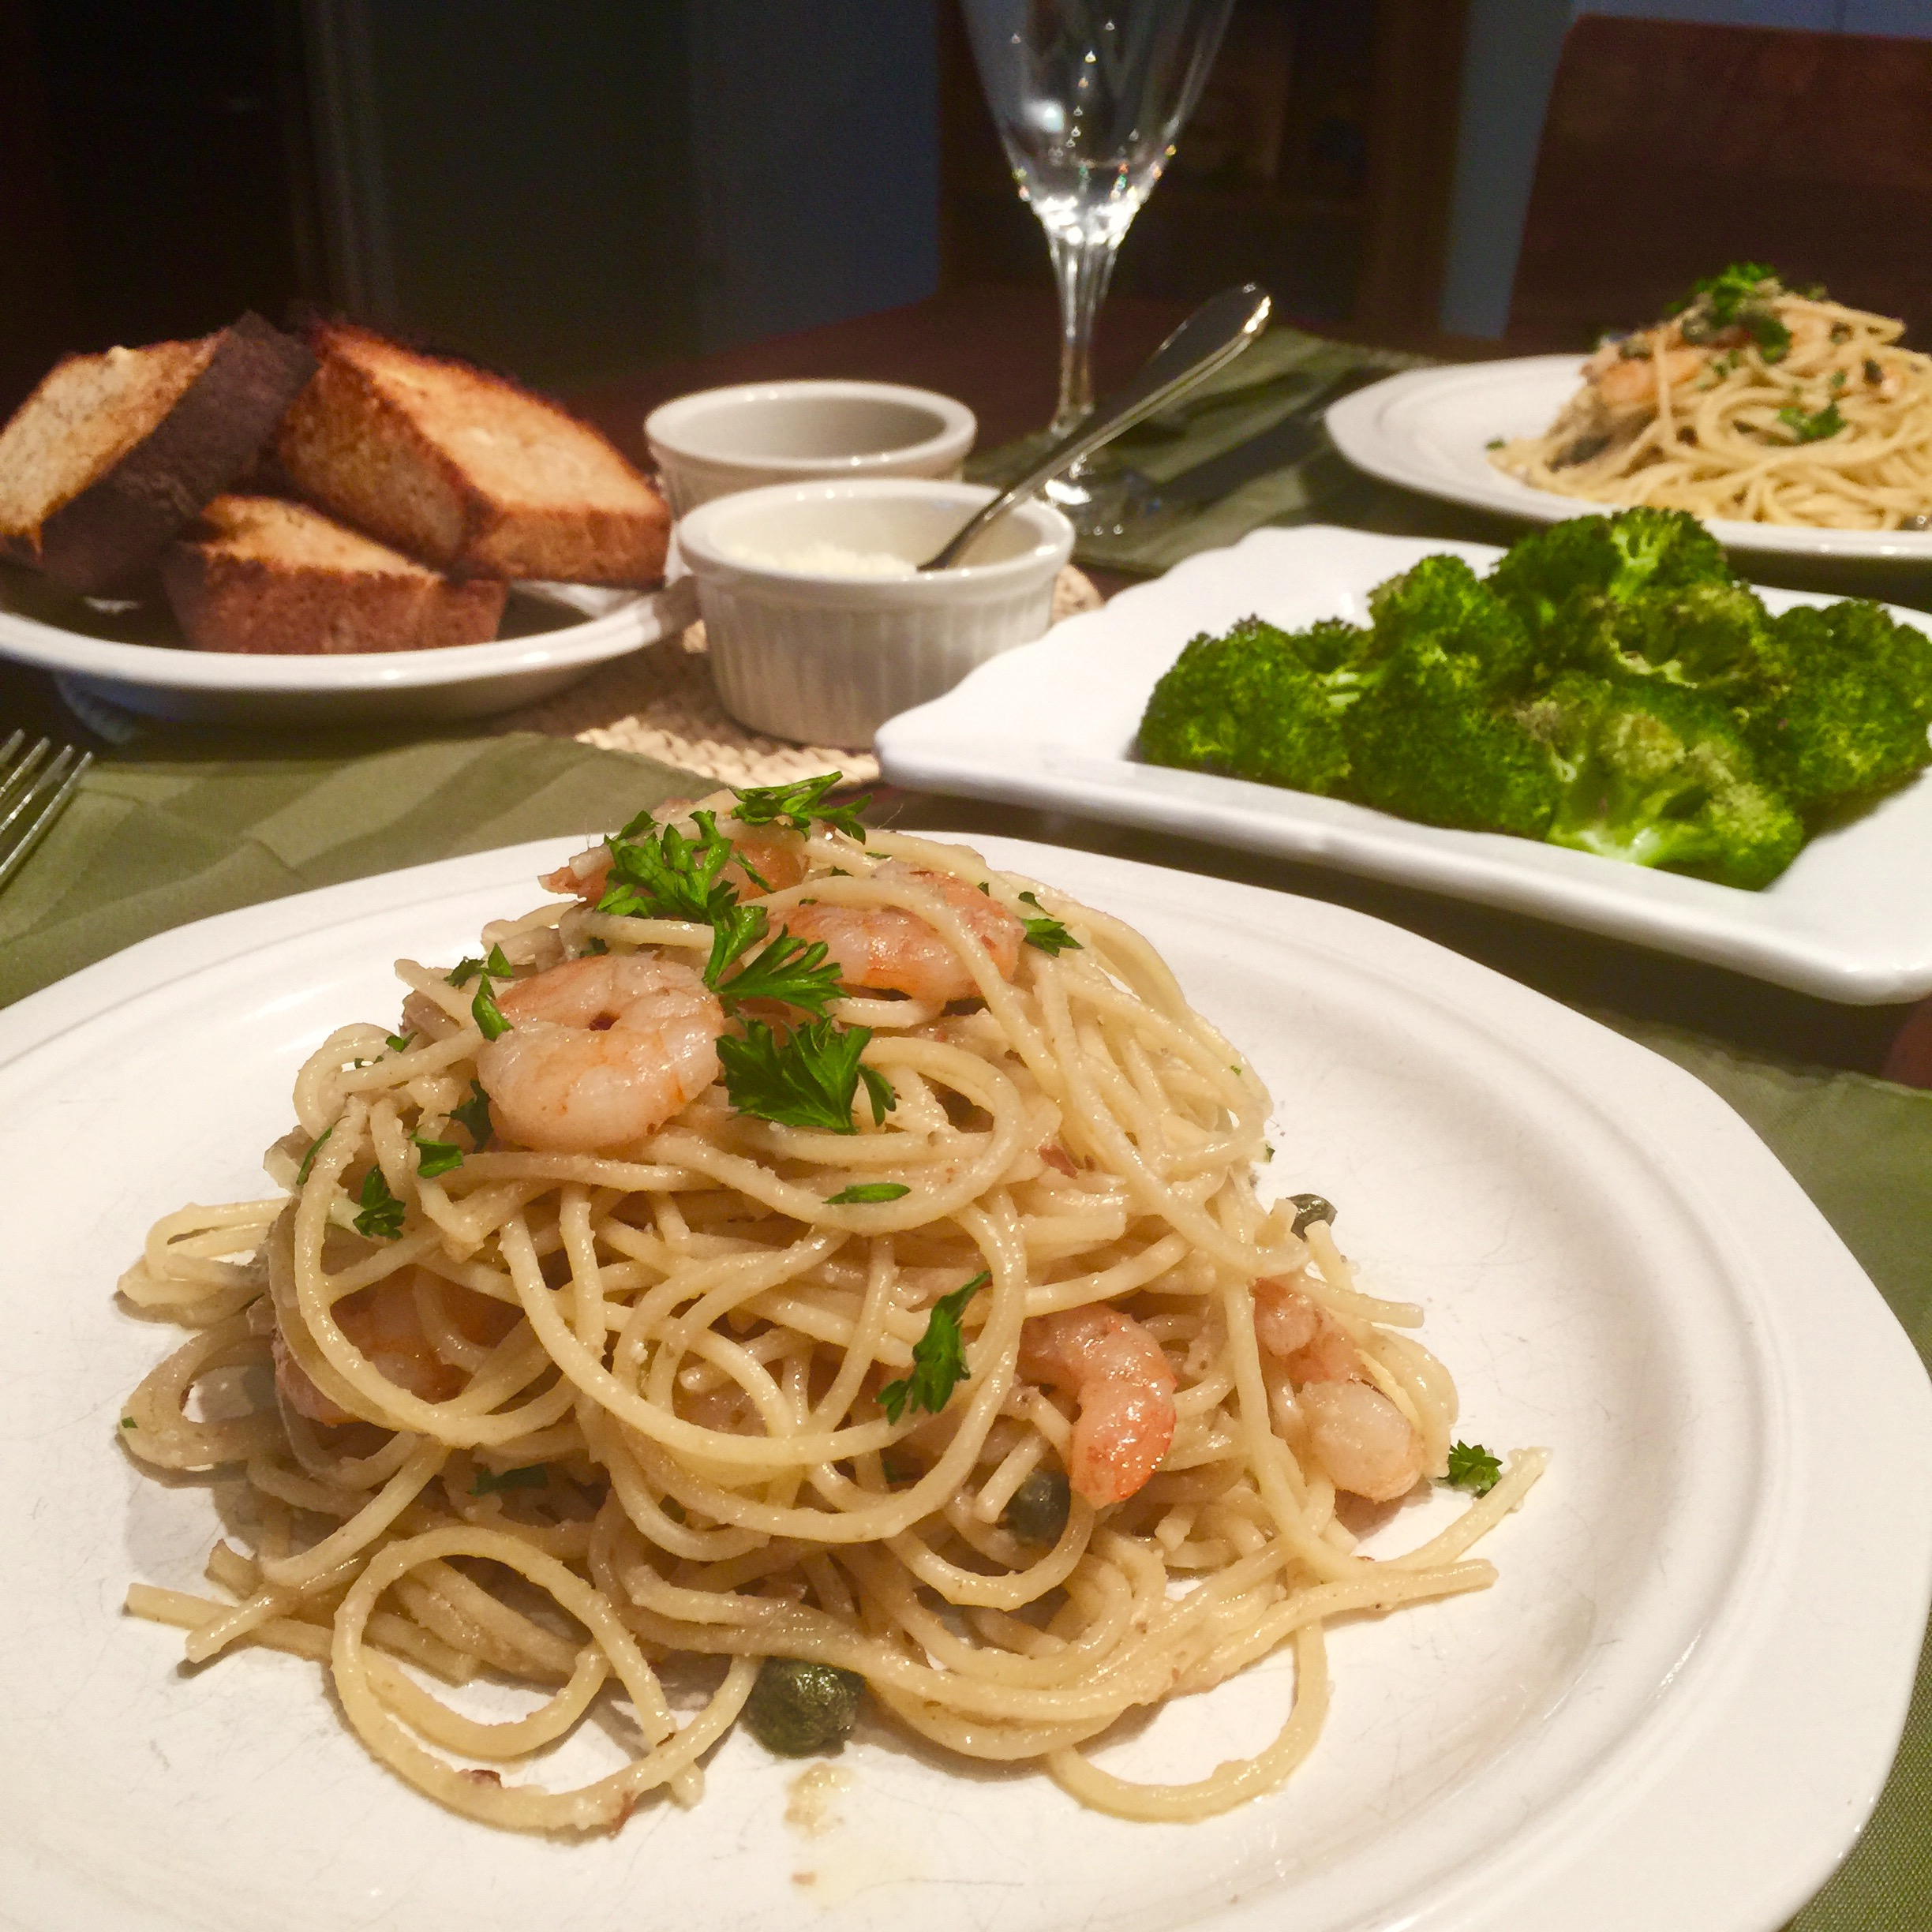 Savory Shrimp Pasta and Roasted Broccoli